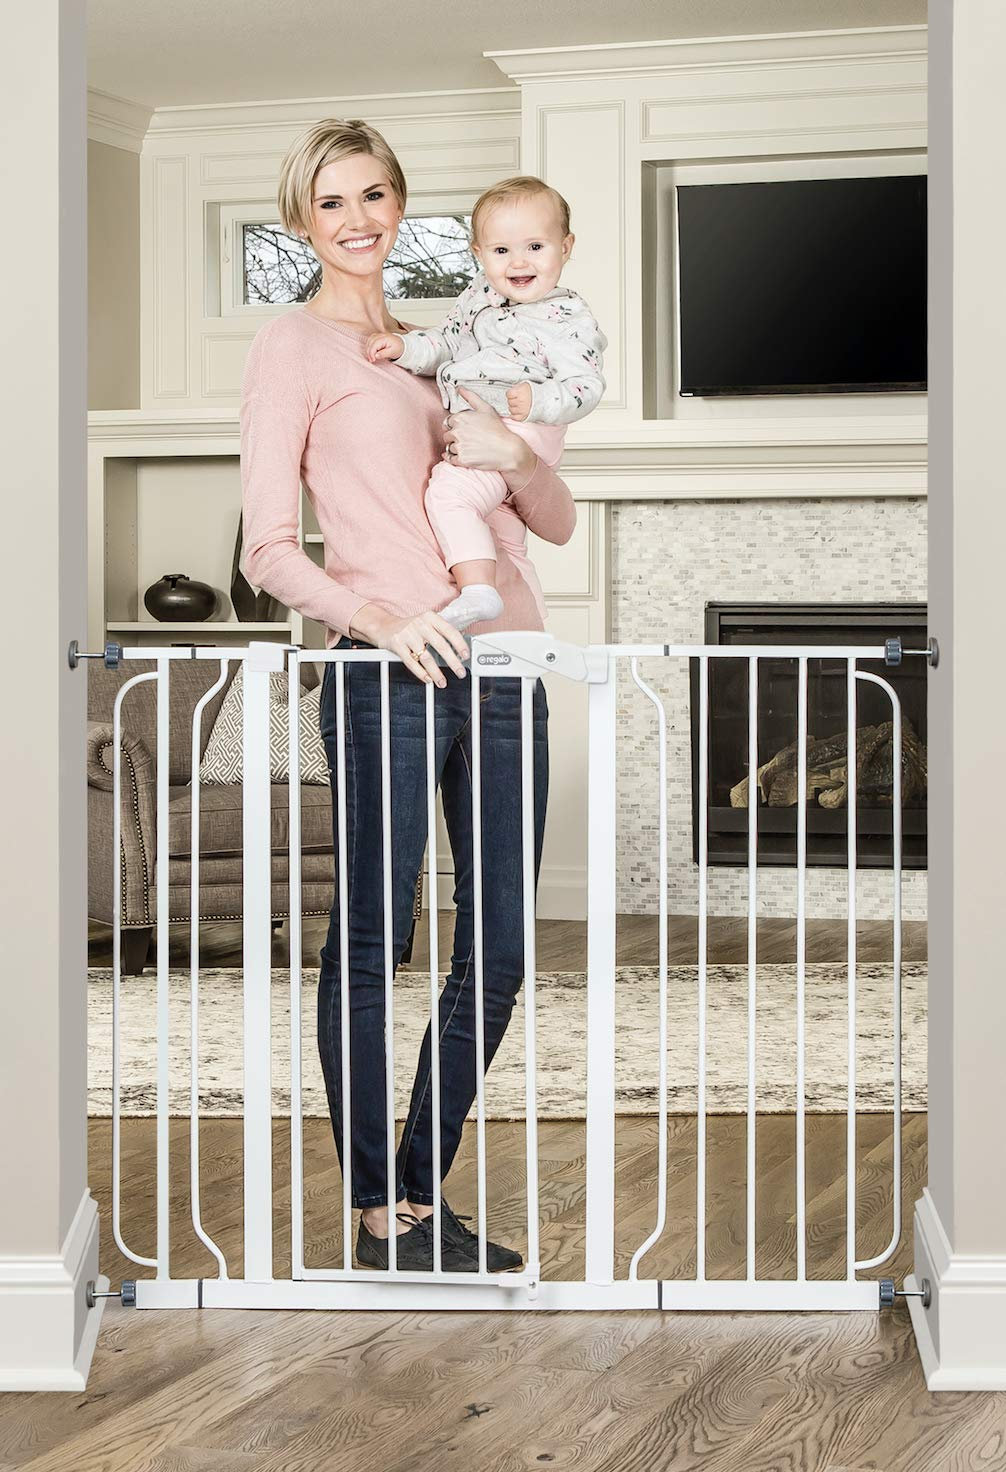 Regalo 38-Inch Extra Tall and 49-Inch Wide Walk Thru Baby Gate, Includes 4-Inch and 12-inch Extension Kit, 4 Pack of Pressure Mount Kit and 4 Pack of Wall Mount Kit by Regalo